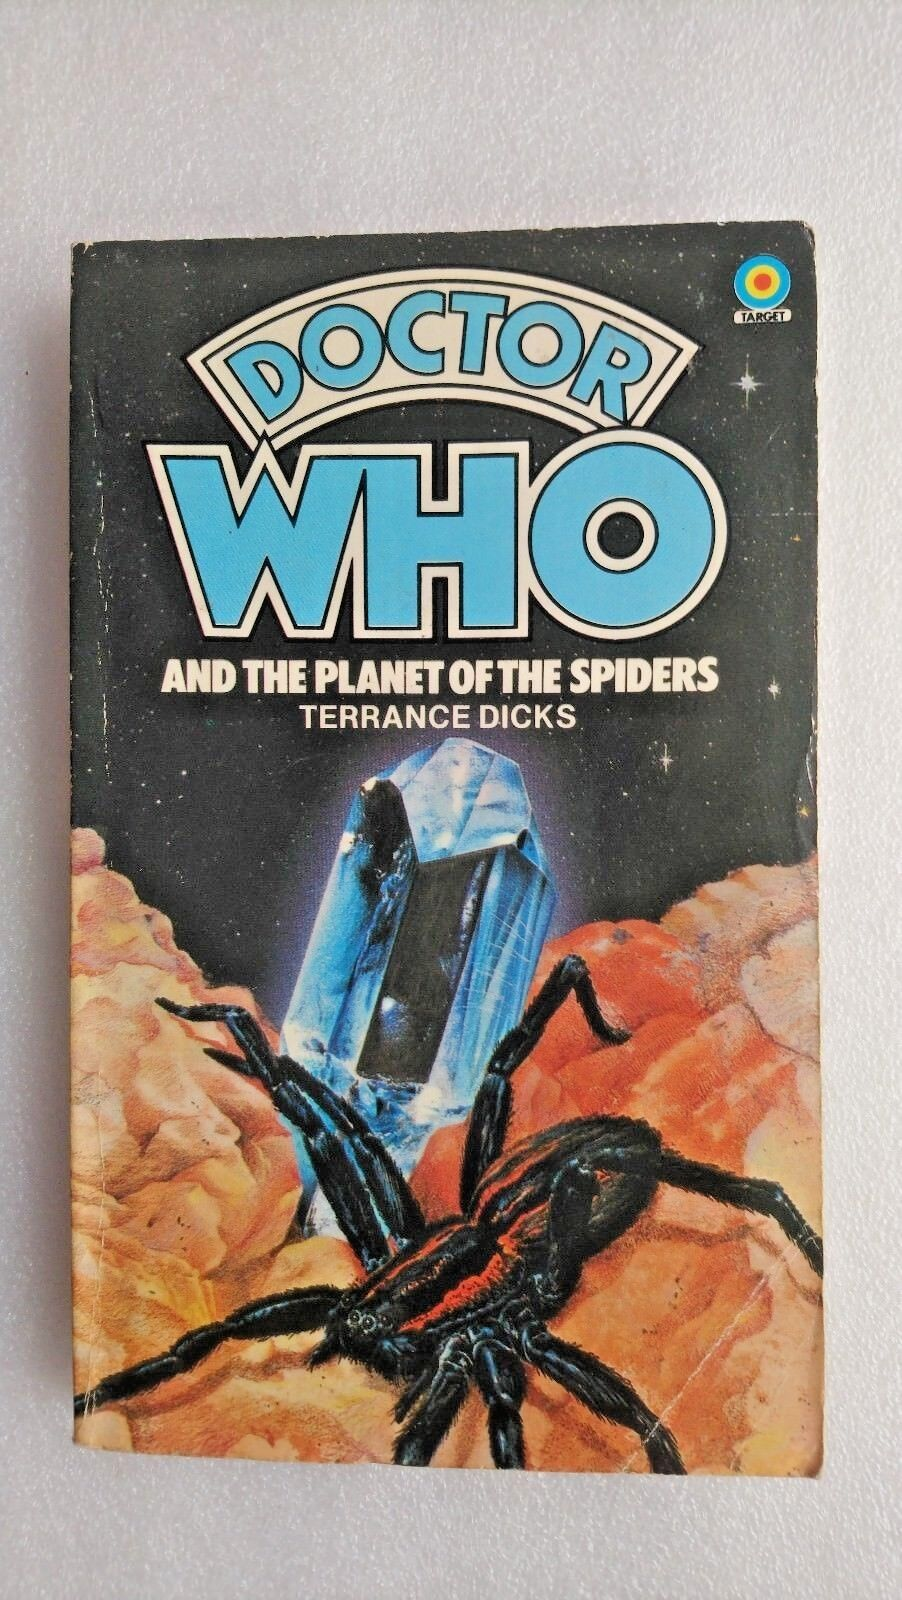 Doctor Who and the Planet of the Spiders by Terrance Dicks (Paperback, 1980)